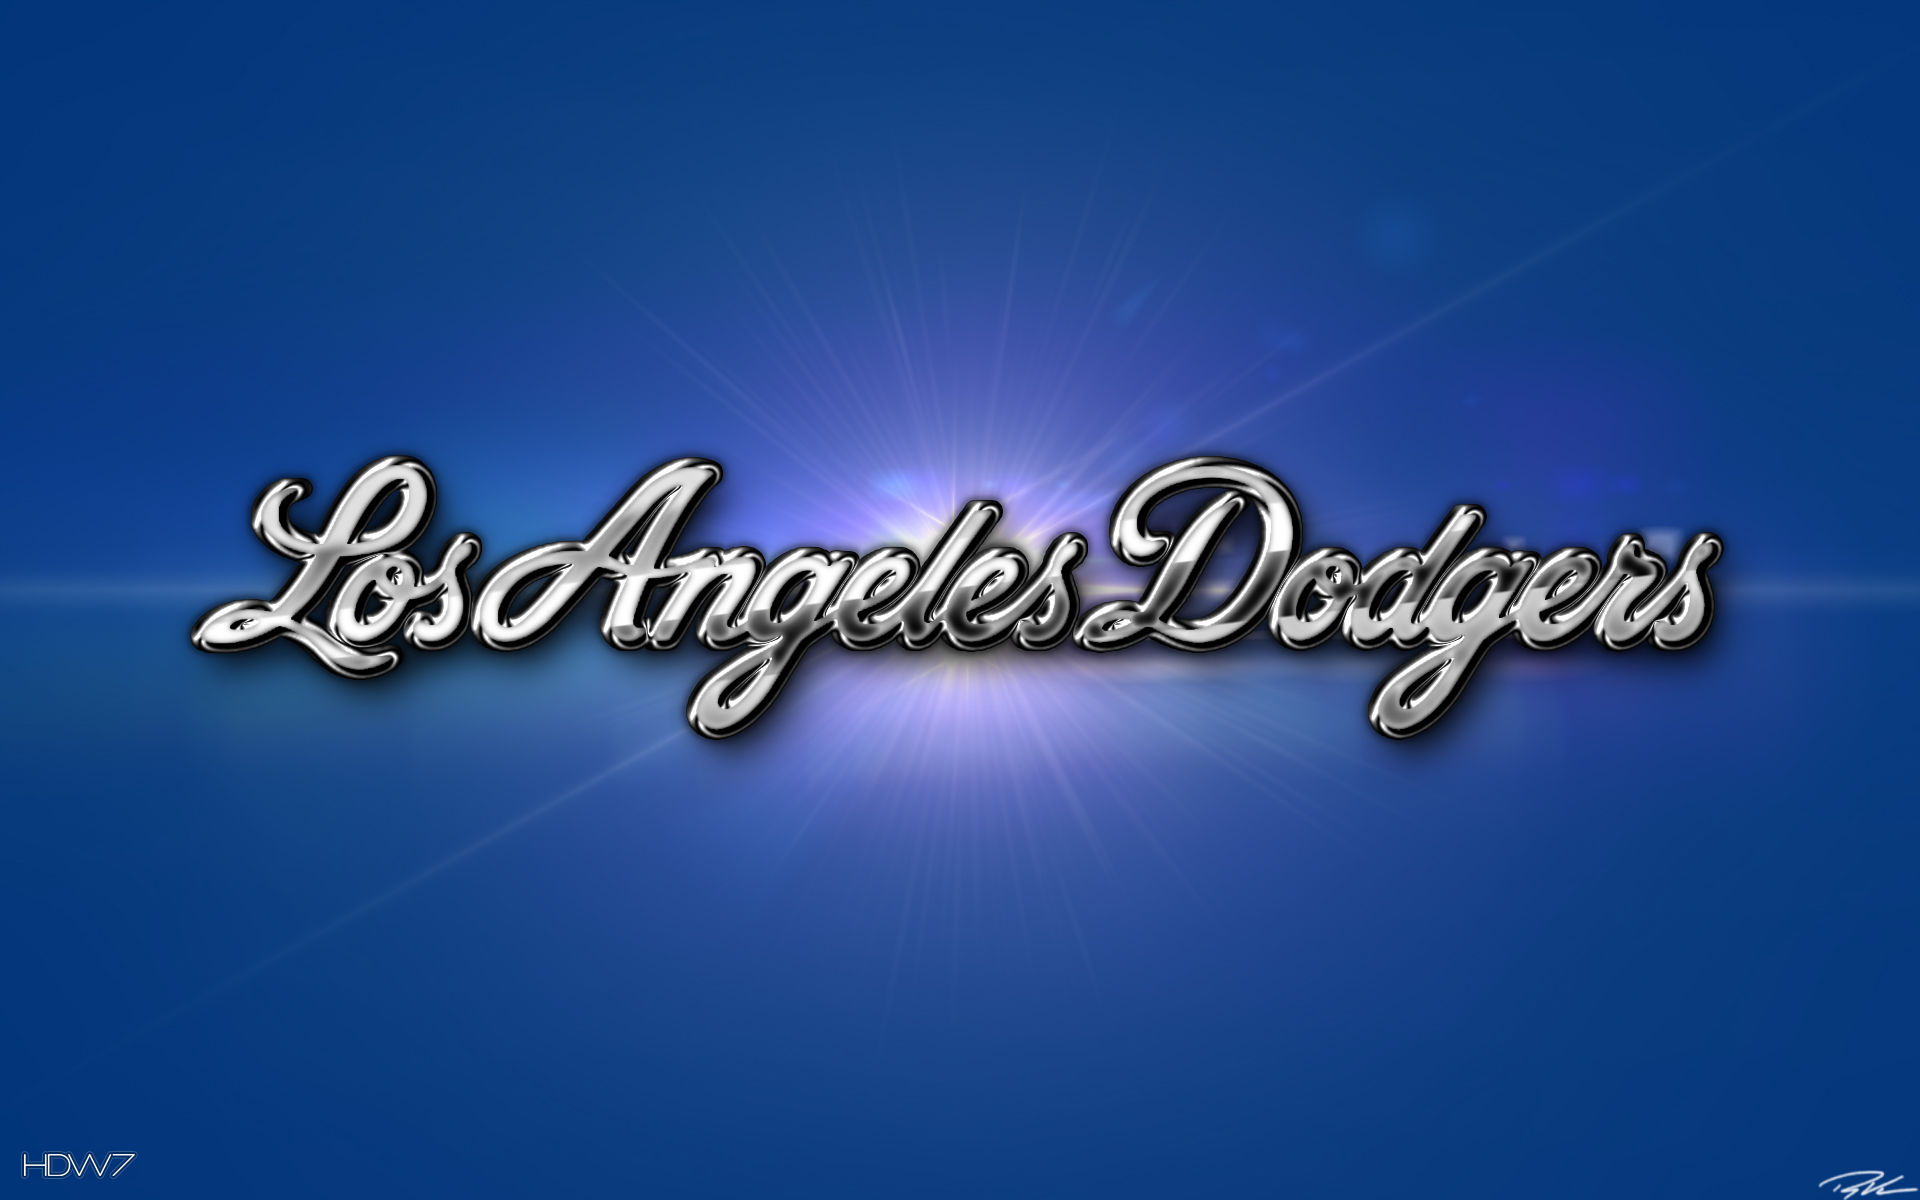 Los Angeles Dodgers 3d Chrome Wallpaper Hd Wallpaper Gallery 12